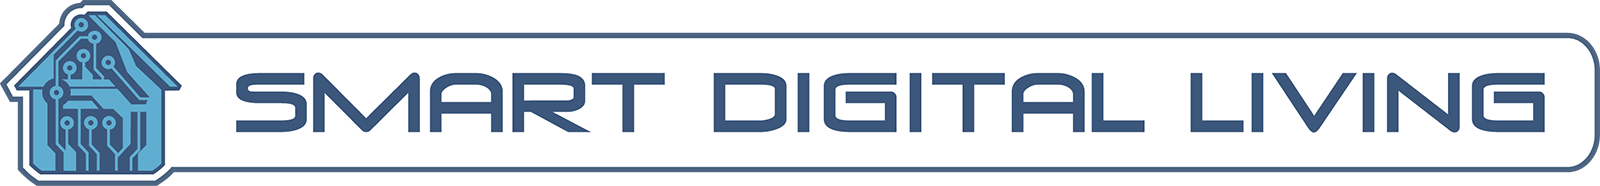 Smart Digital Living Logo